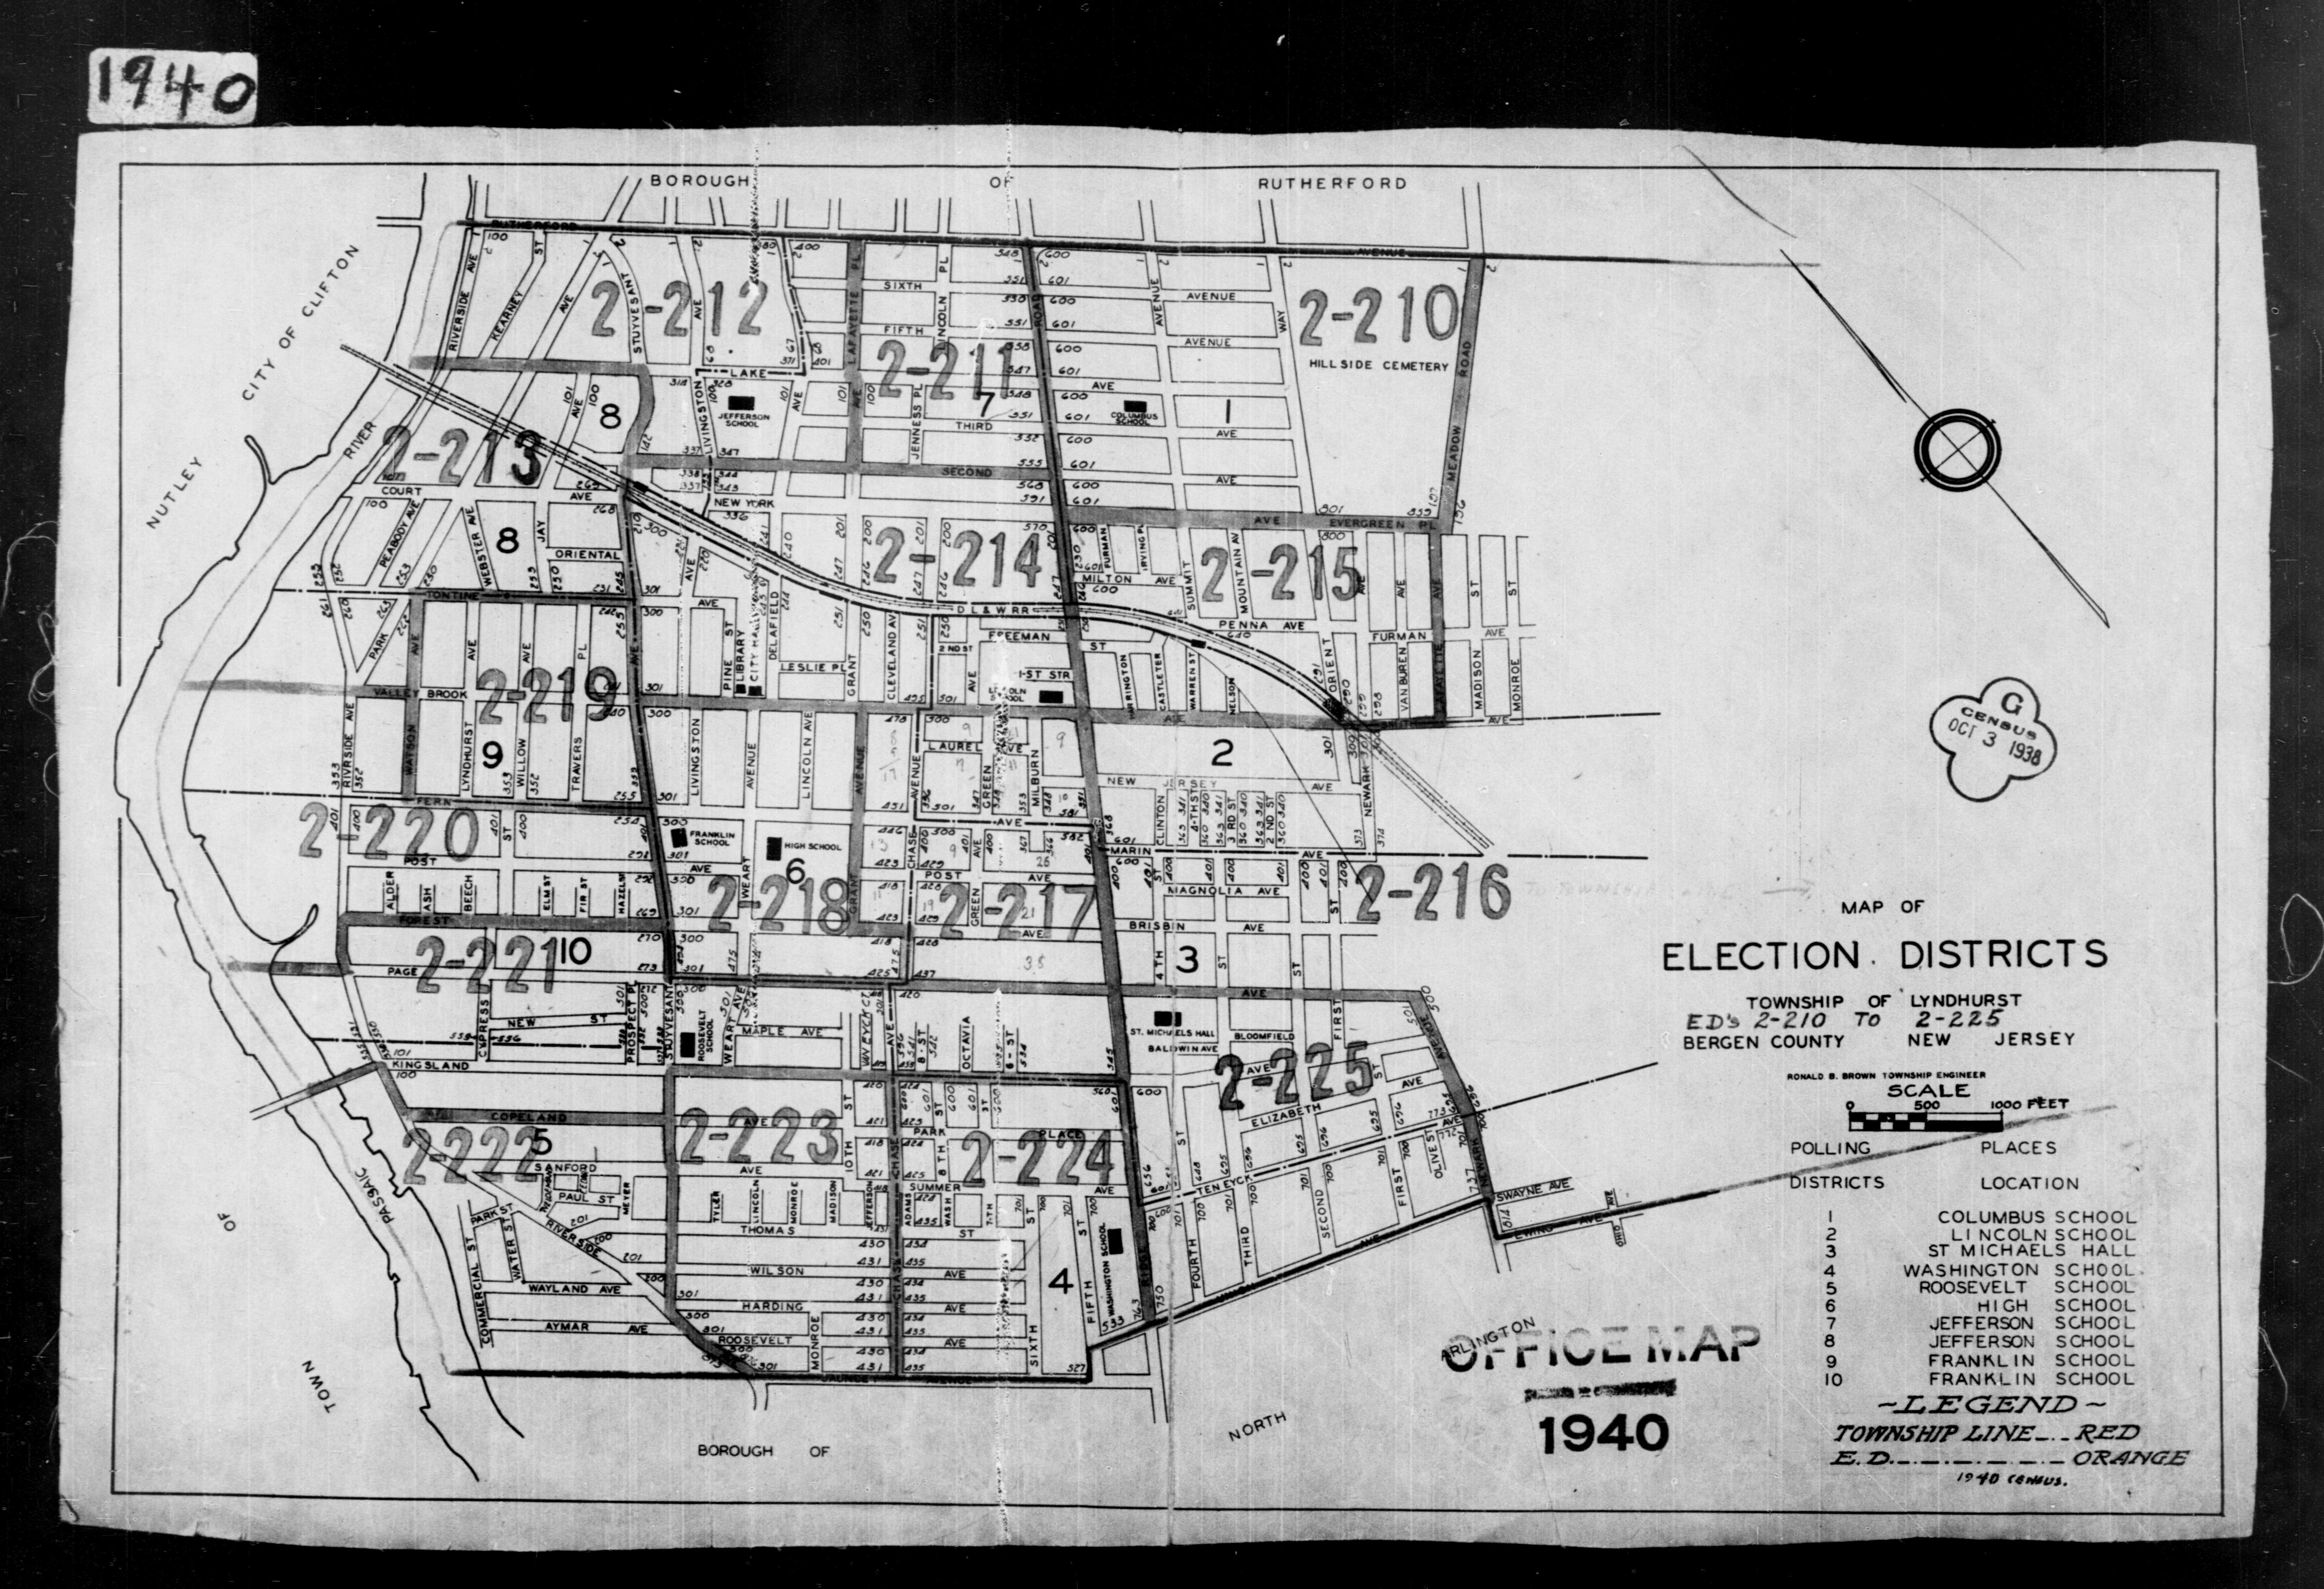 1940 Census Enumeration District Maps - New Jersey - Bergen County - Lyndhurst - ED 2-210 - ED 2-225